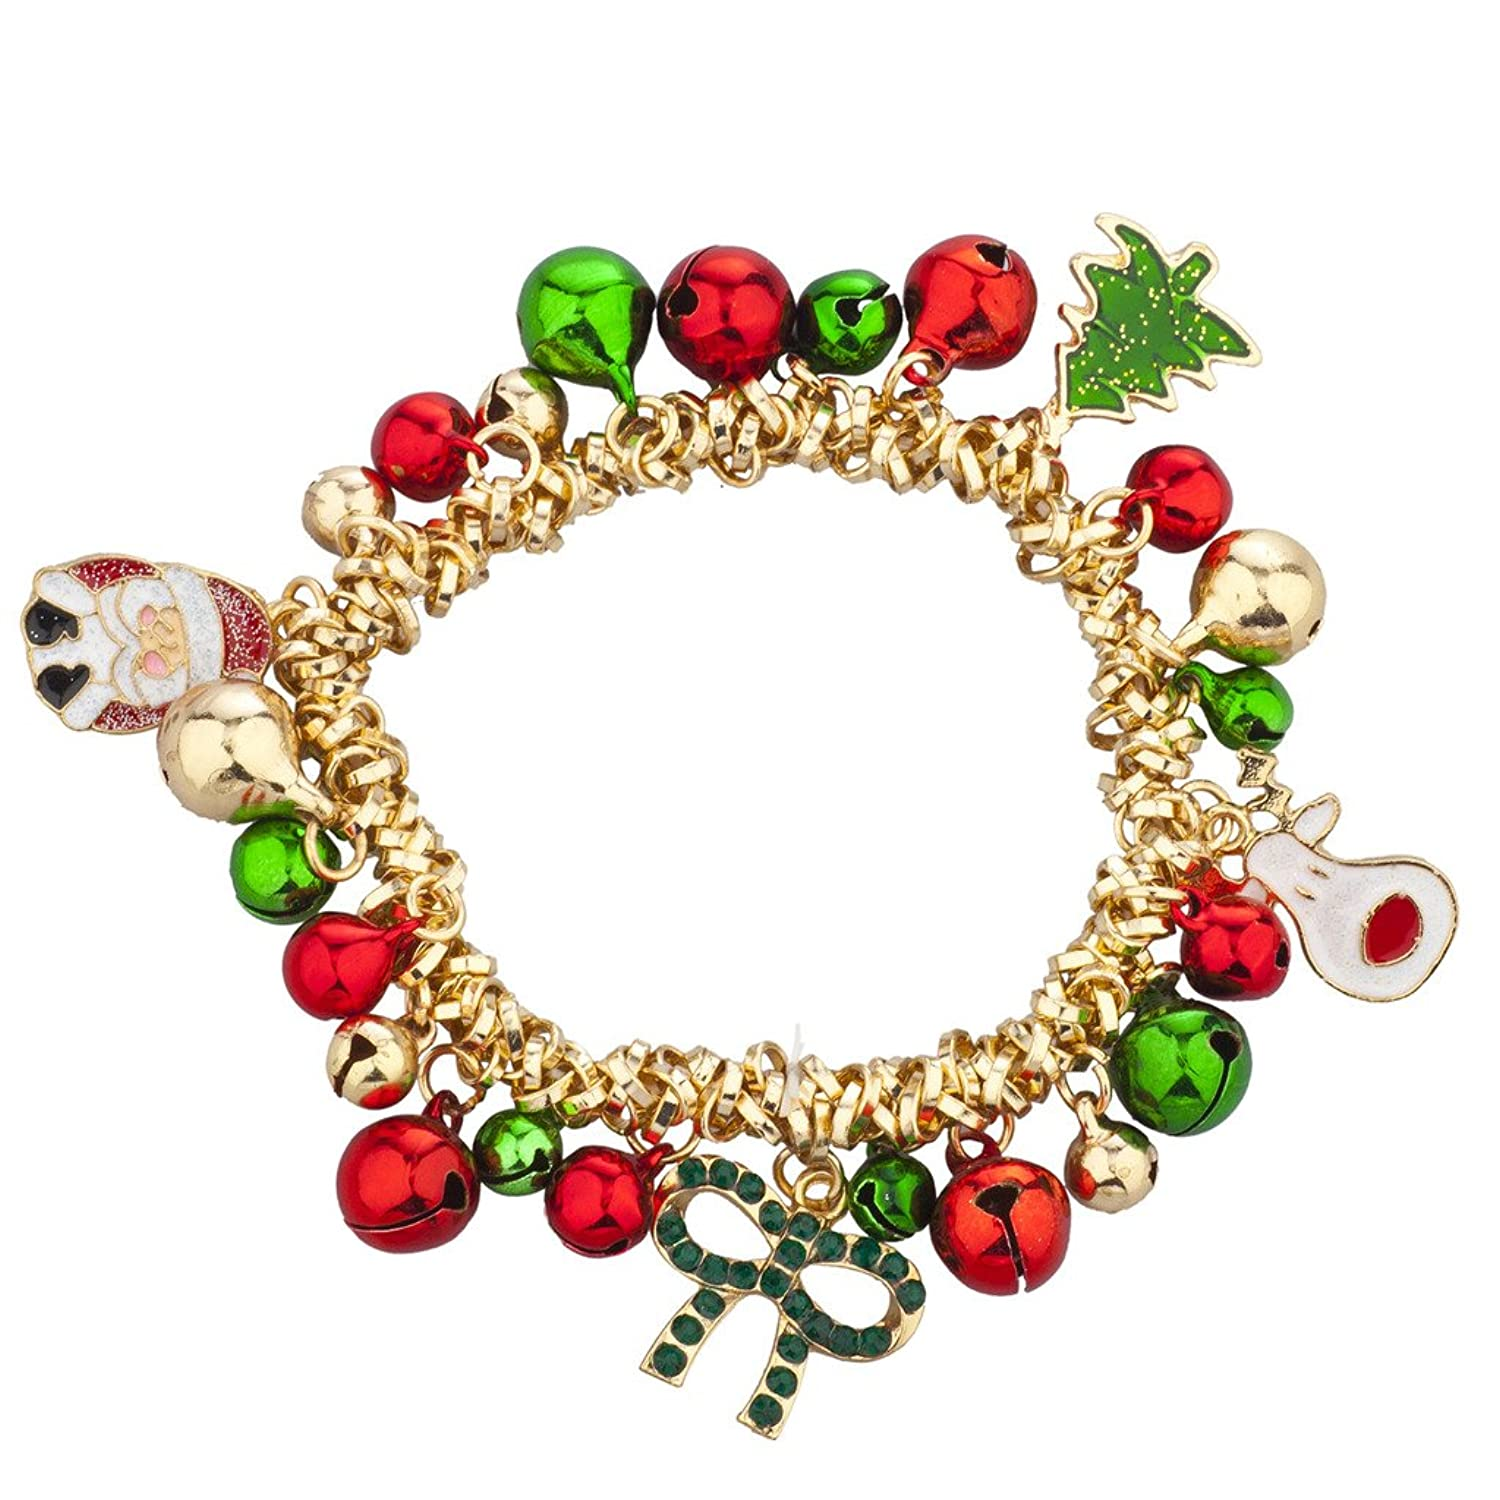 Lux Accessories Christmas X-Mas Holiday Jingle Bells Charm Bracelet